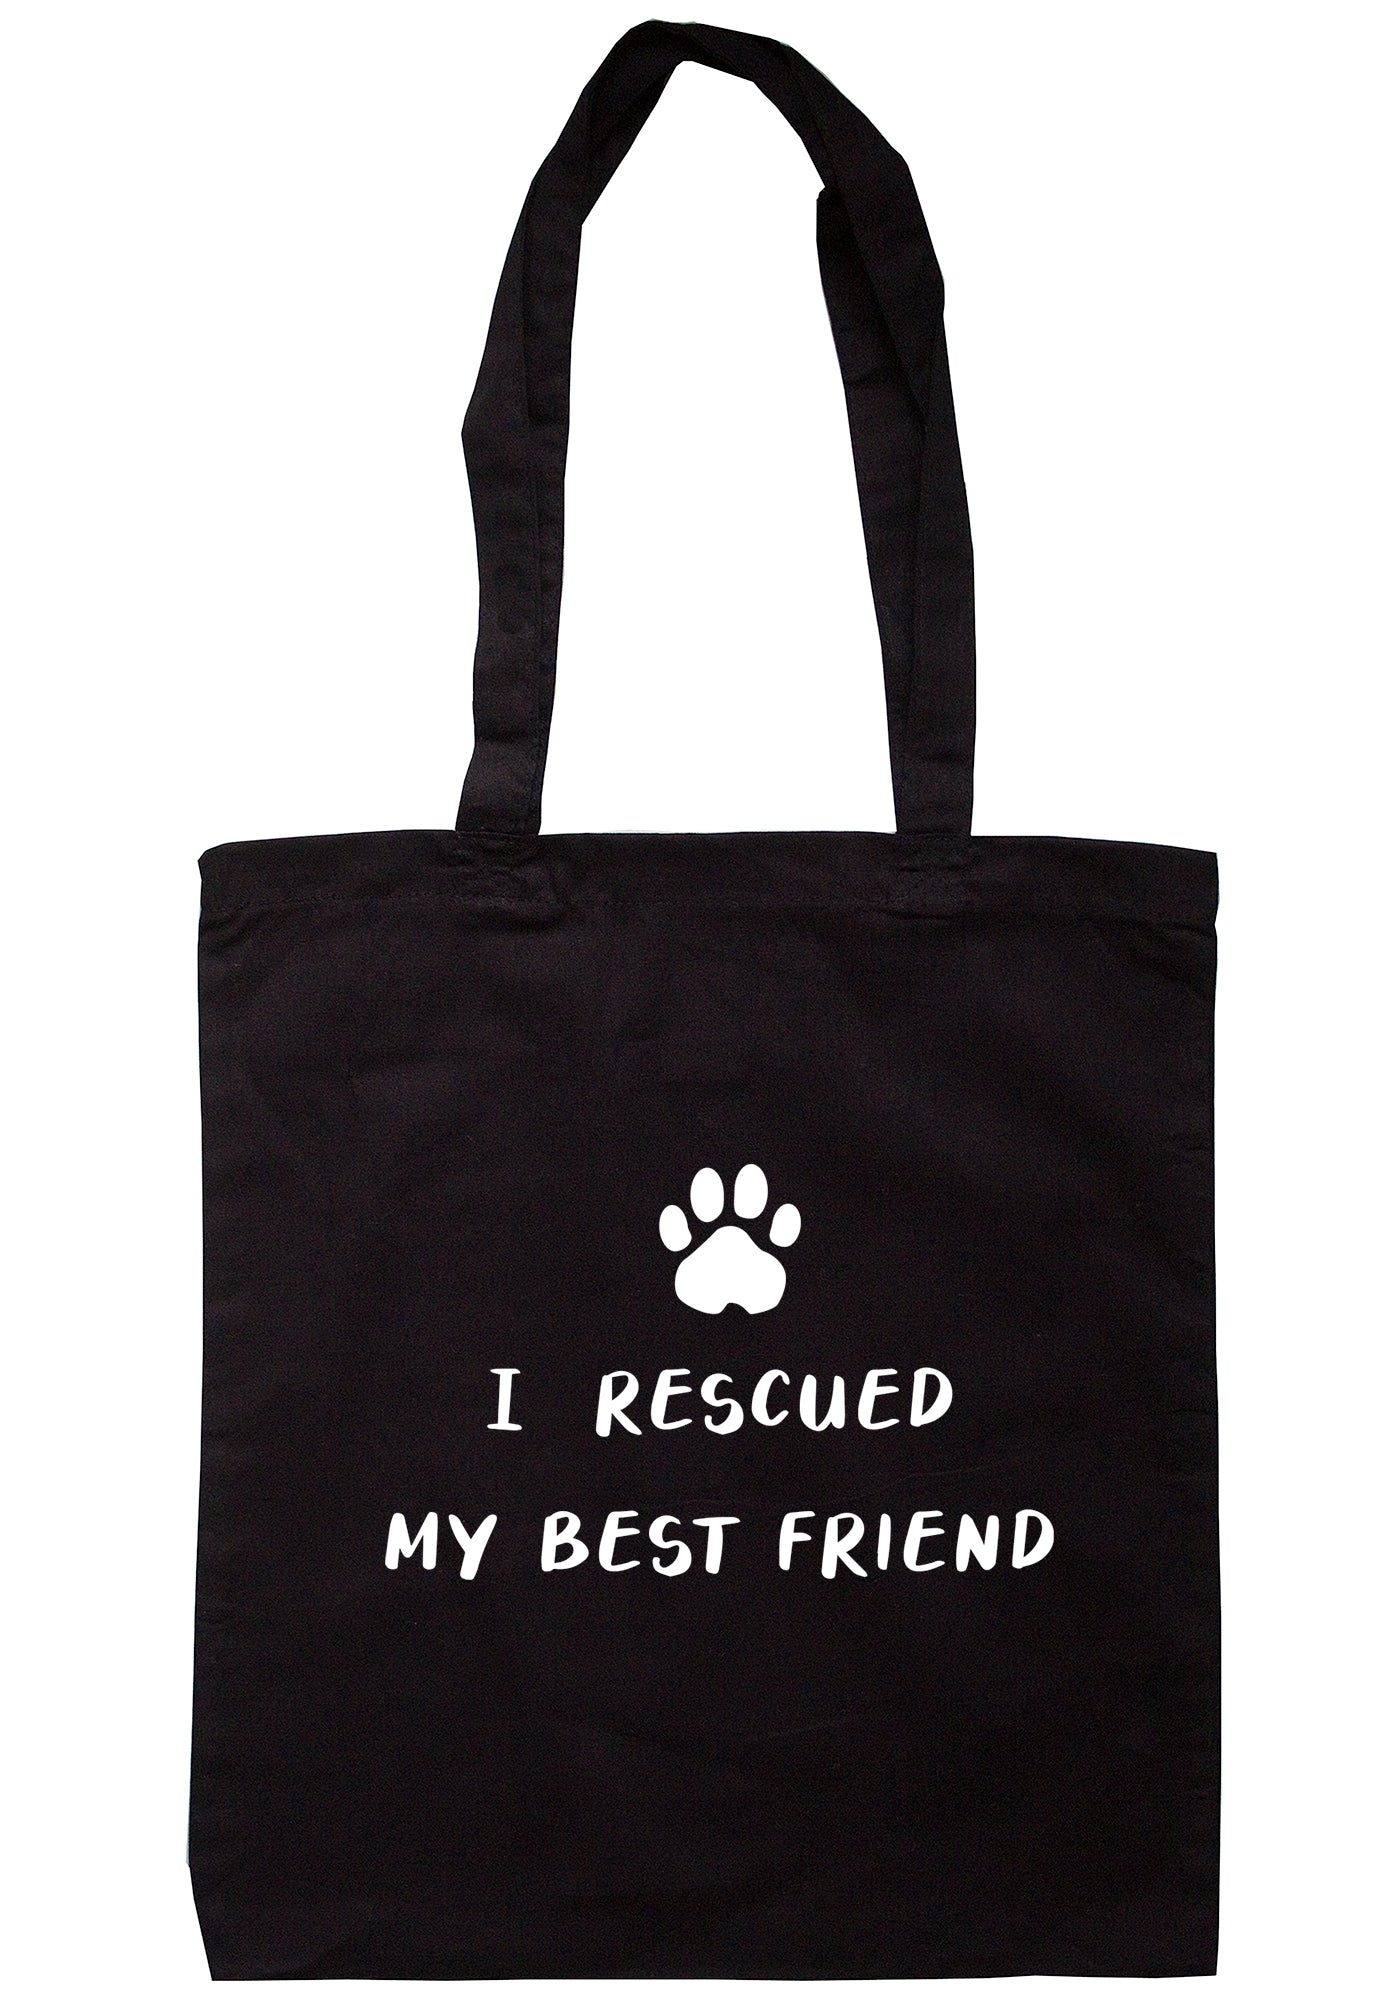 I Rescued My Best Friend Tote Bag A0073 - Illustrated Identity Ltd.